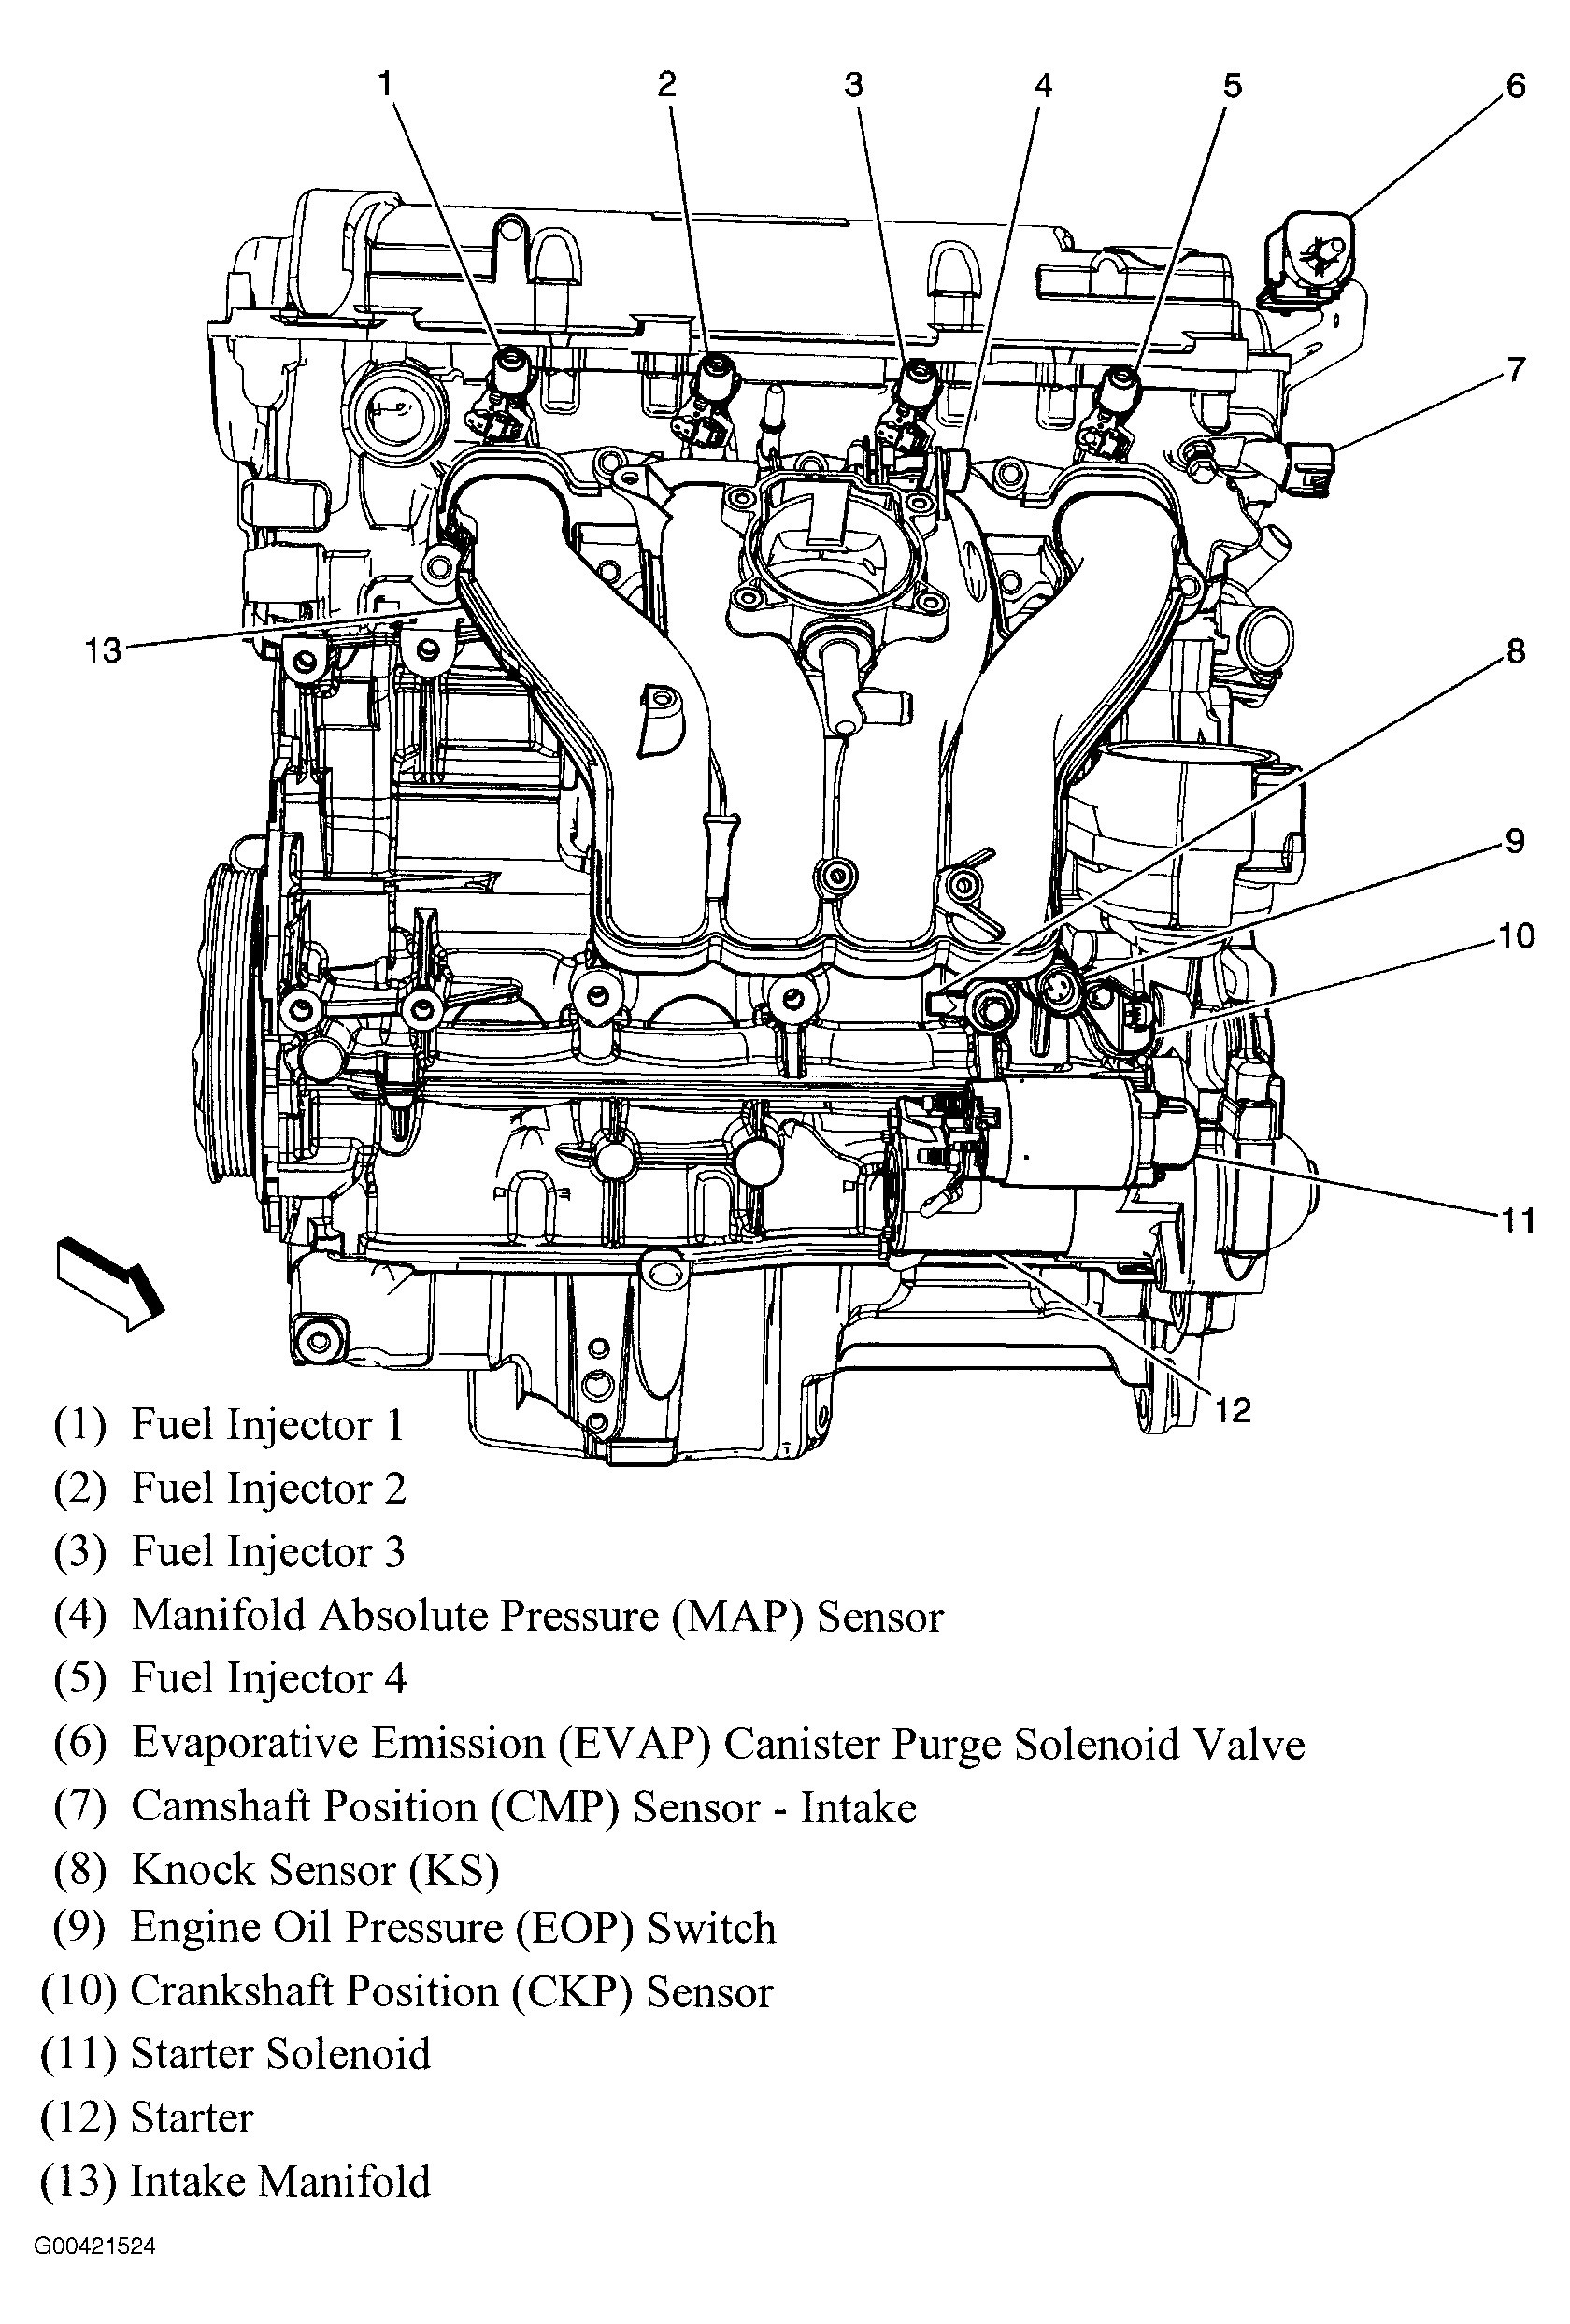 Chevy Aveo Engine Diagram